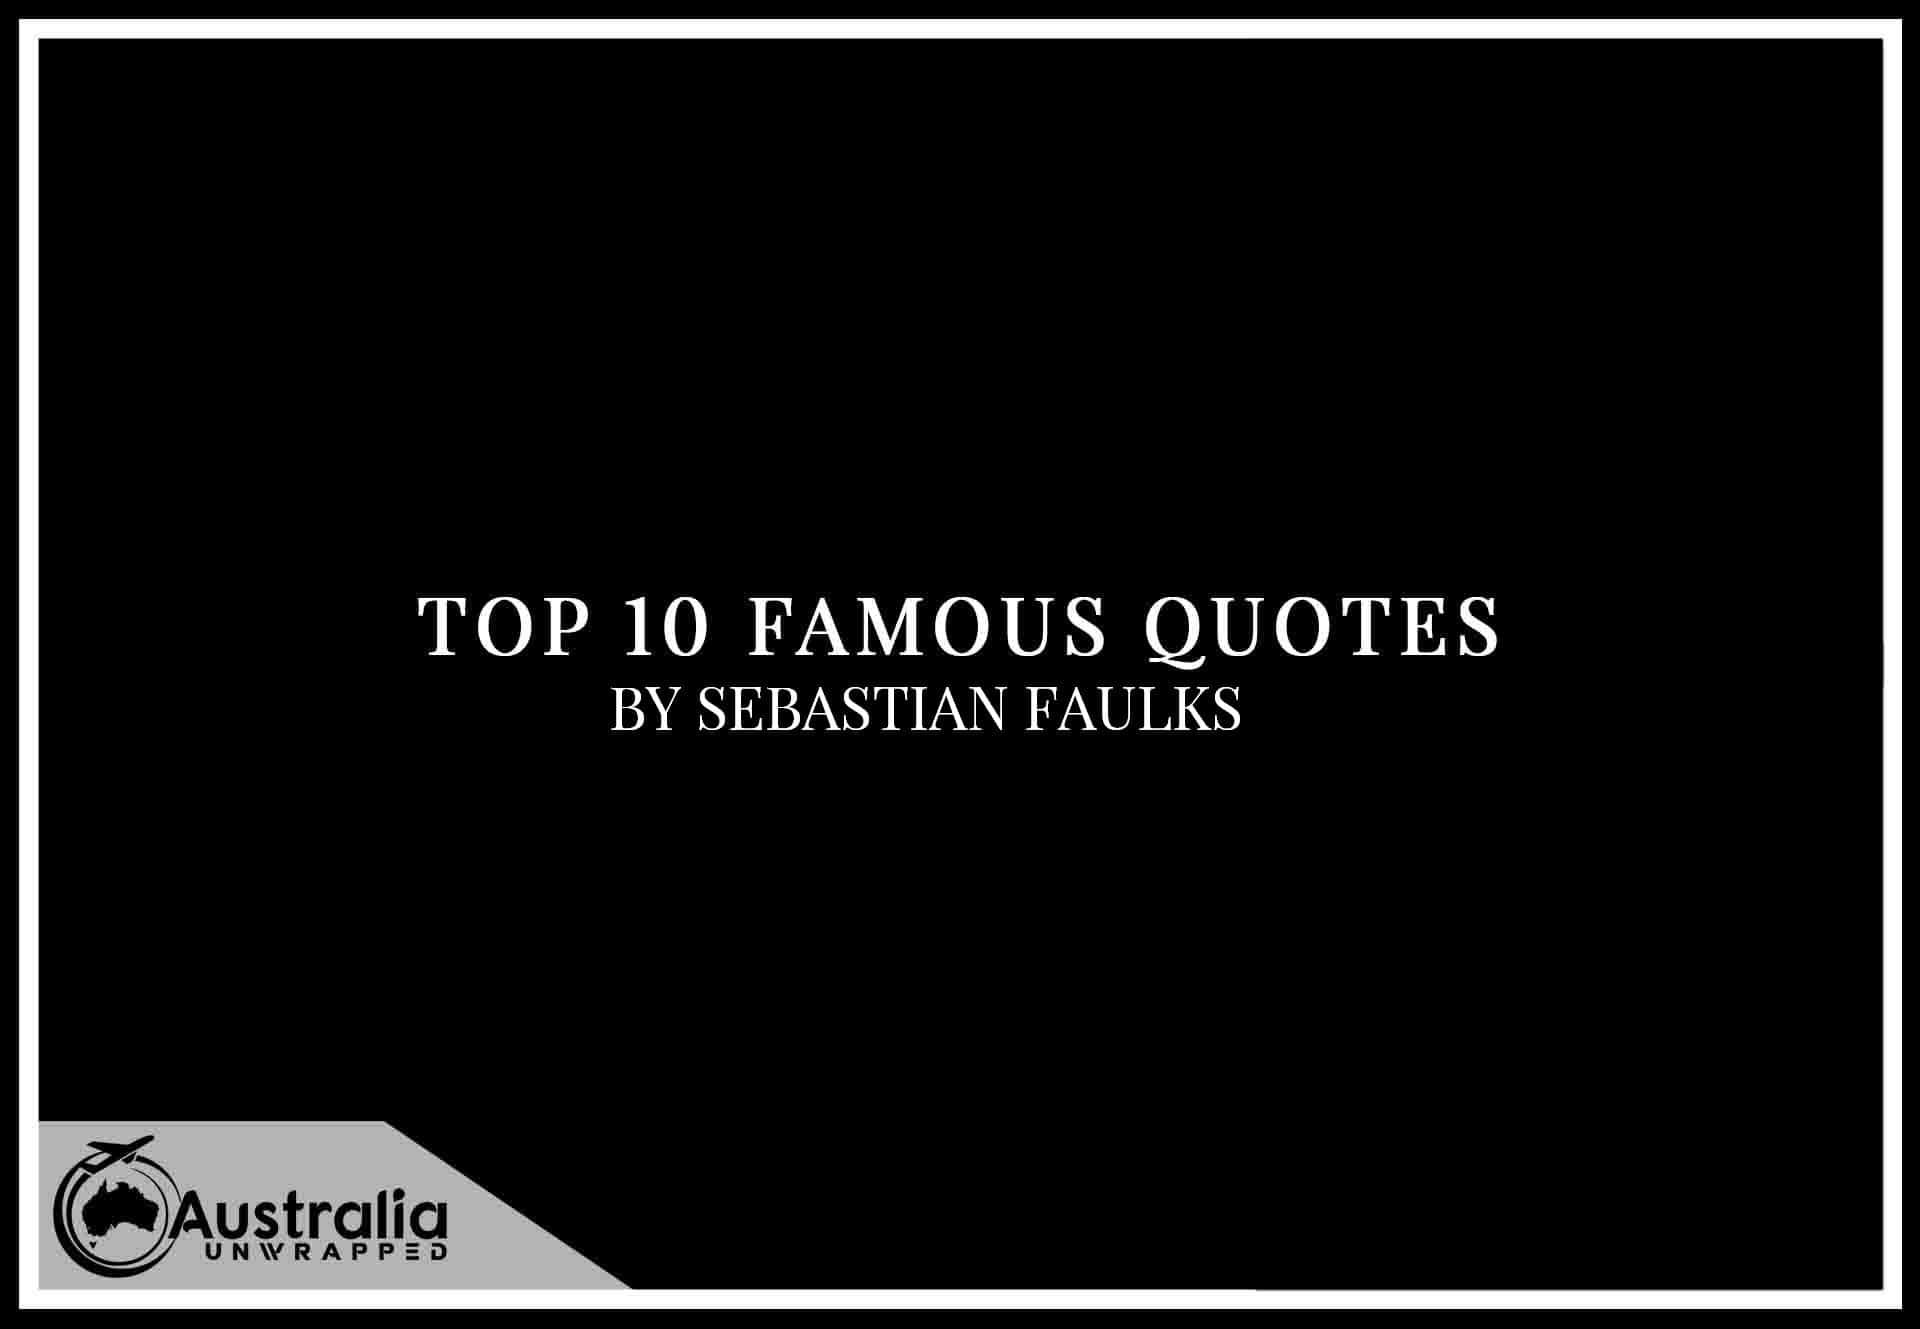 Top 10 Famous Quotes by Author Sebastian Faulks